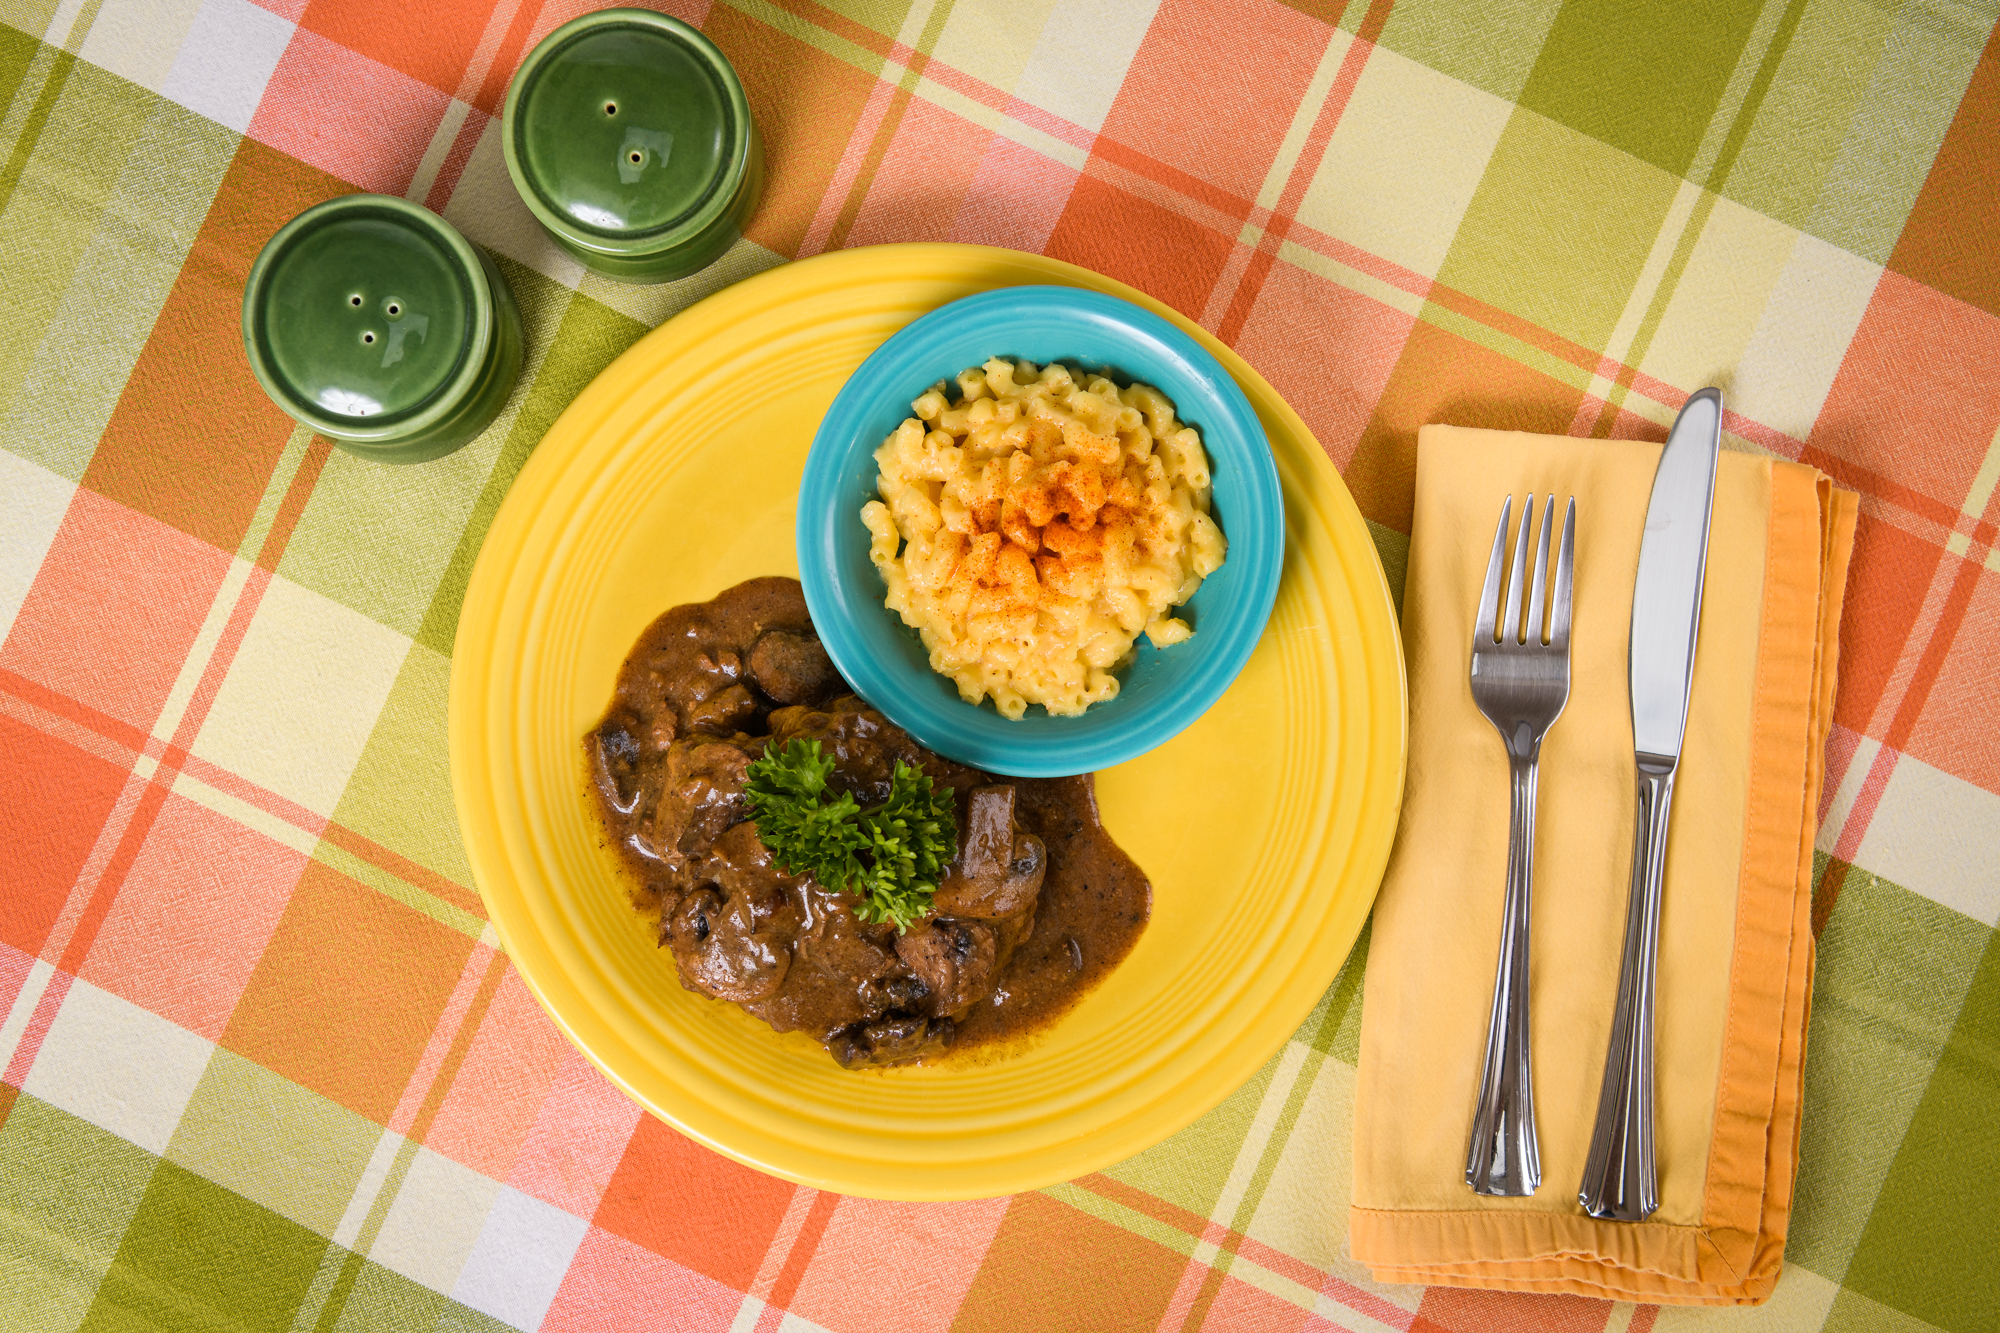 Picture of salisbury steak and macaroni and cheese on a plate